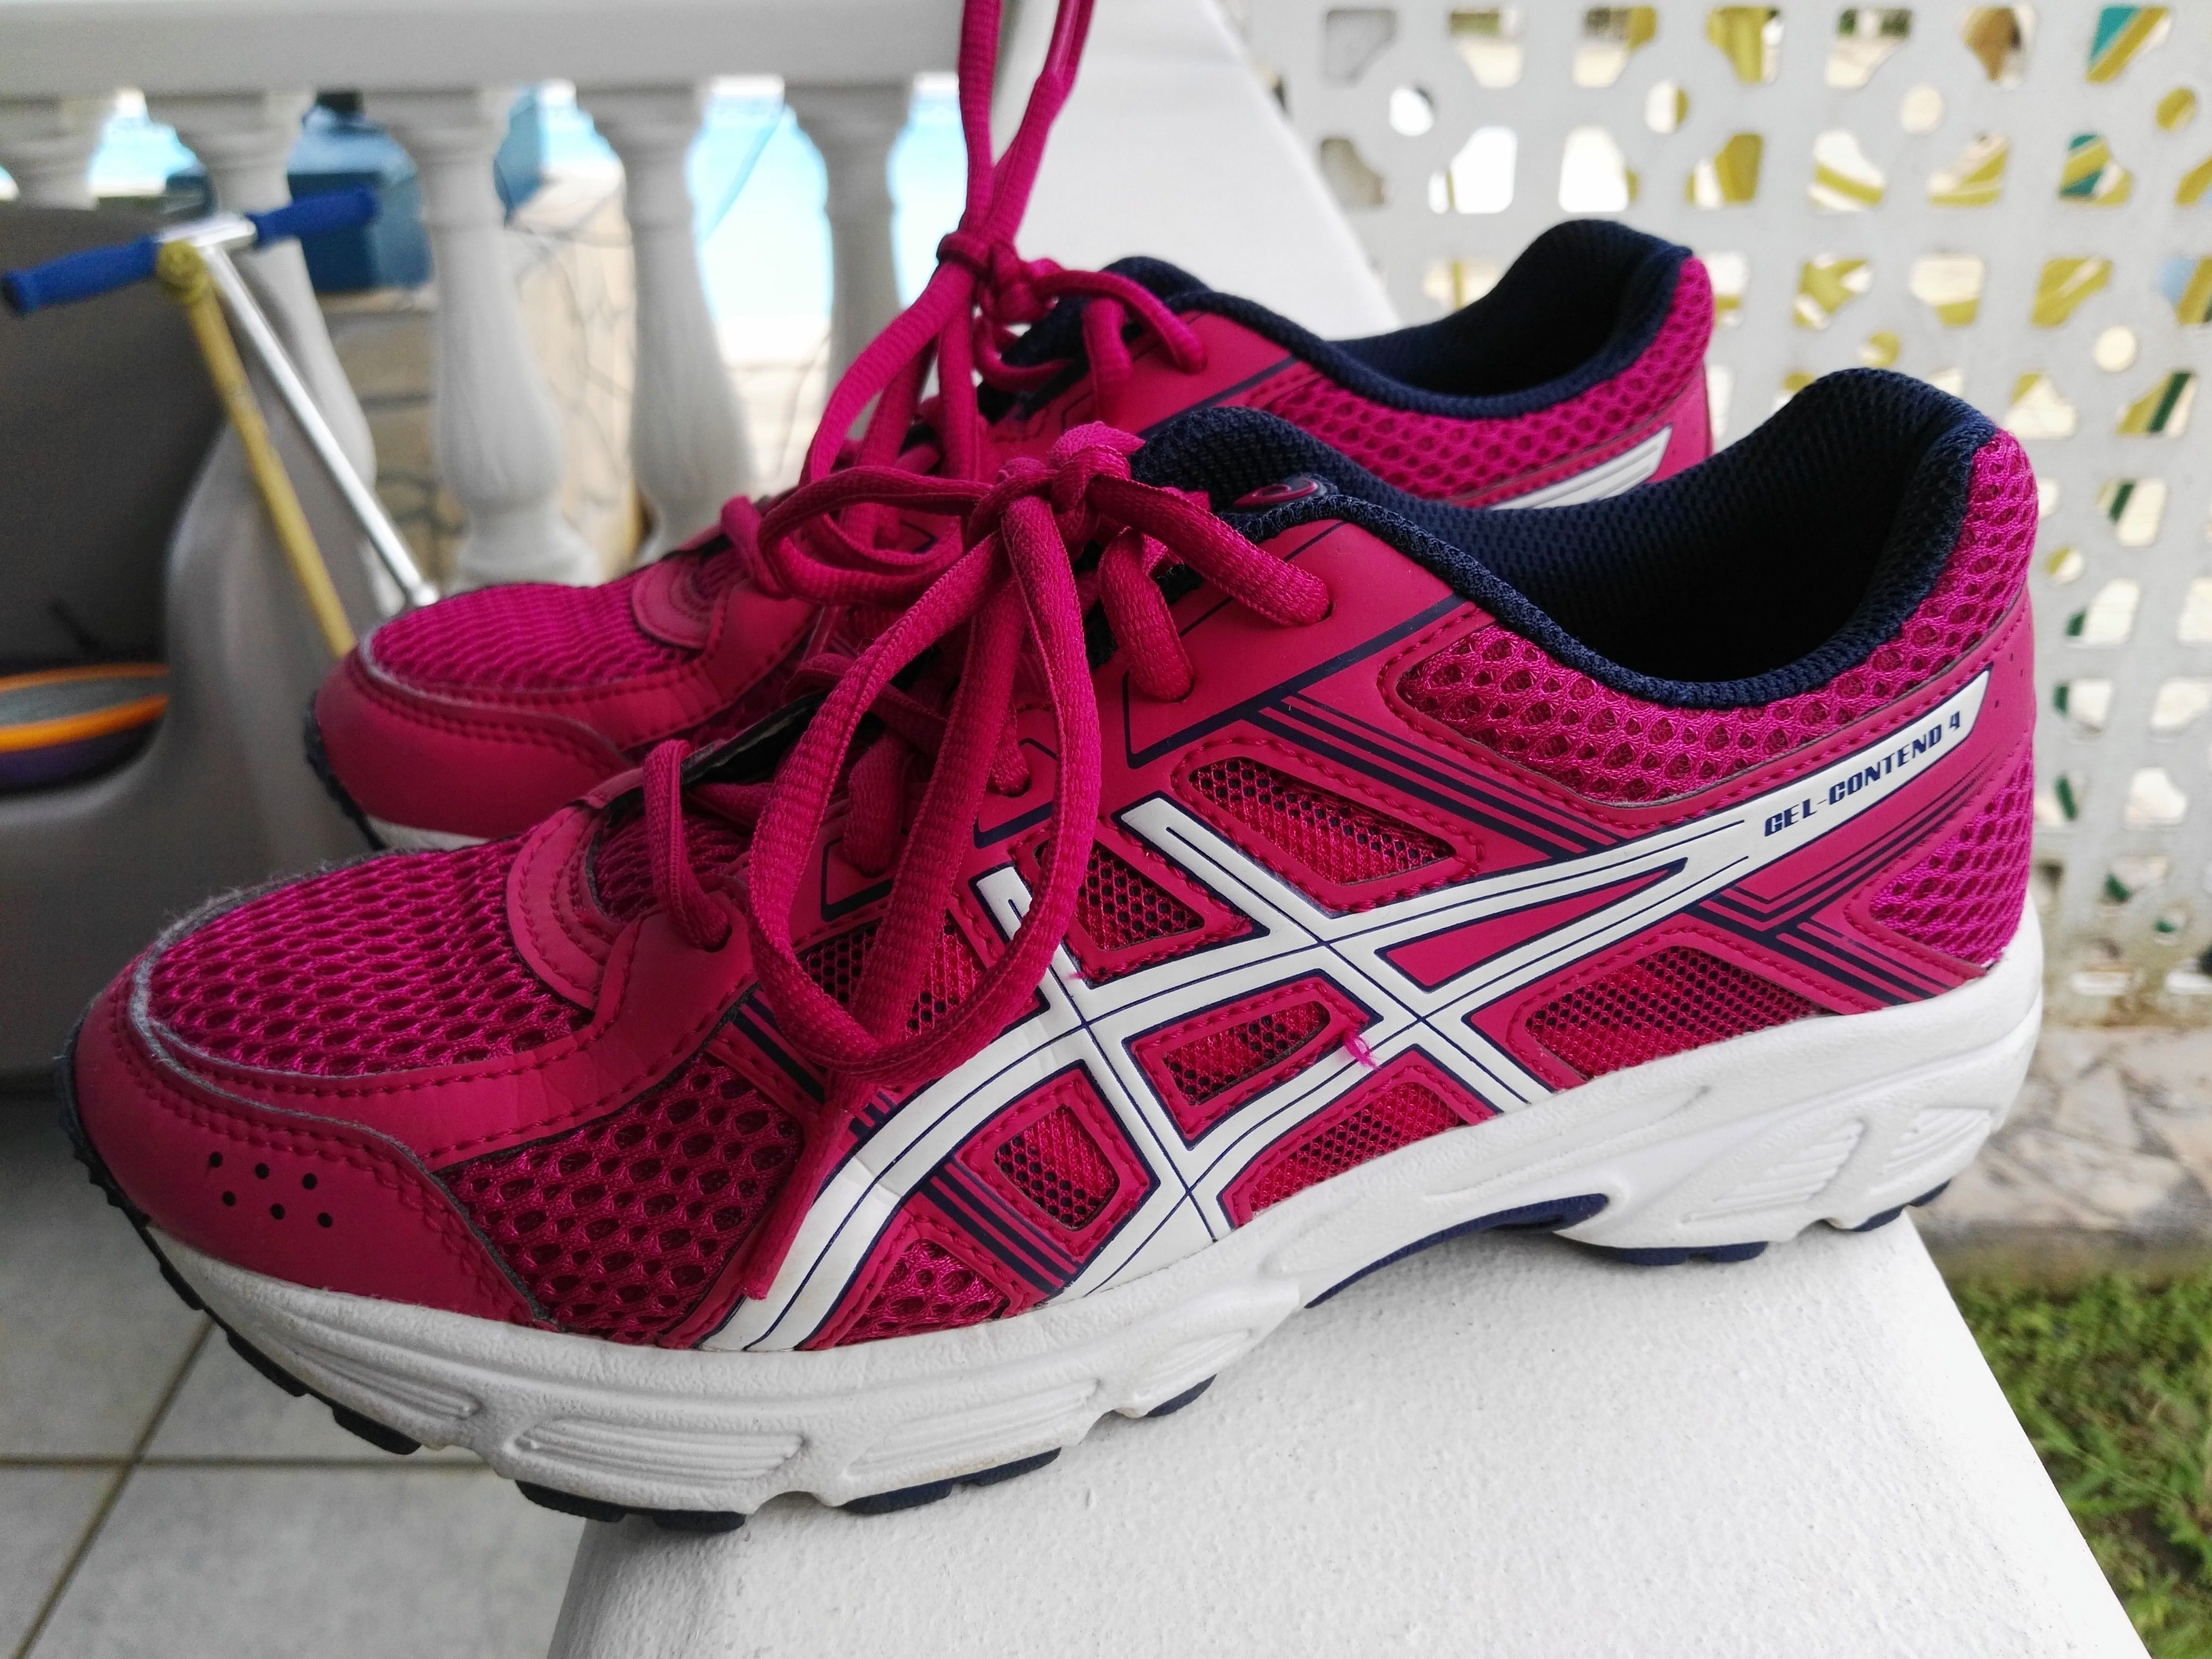 Running Big Taille Contend Femme Wbxanueqy Gel Ce Chaussures 36 Asics IU0wCqI